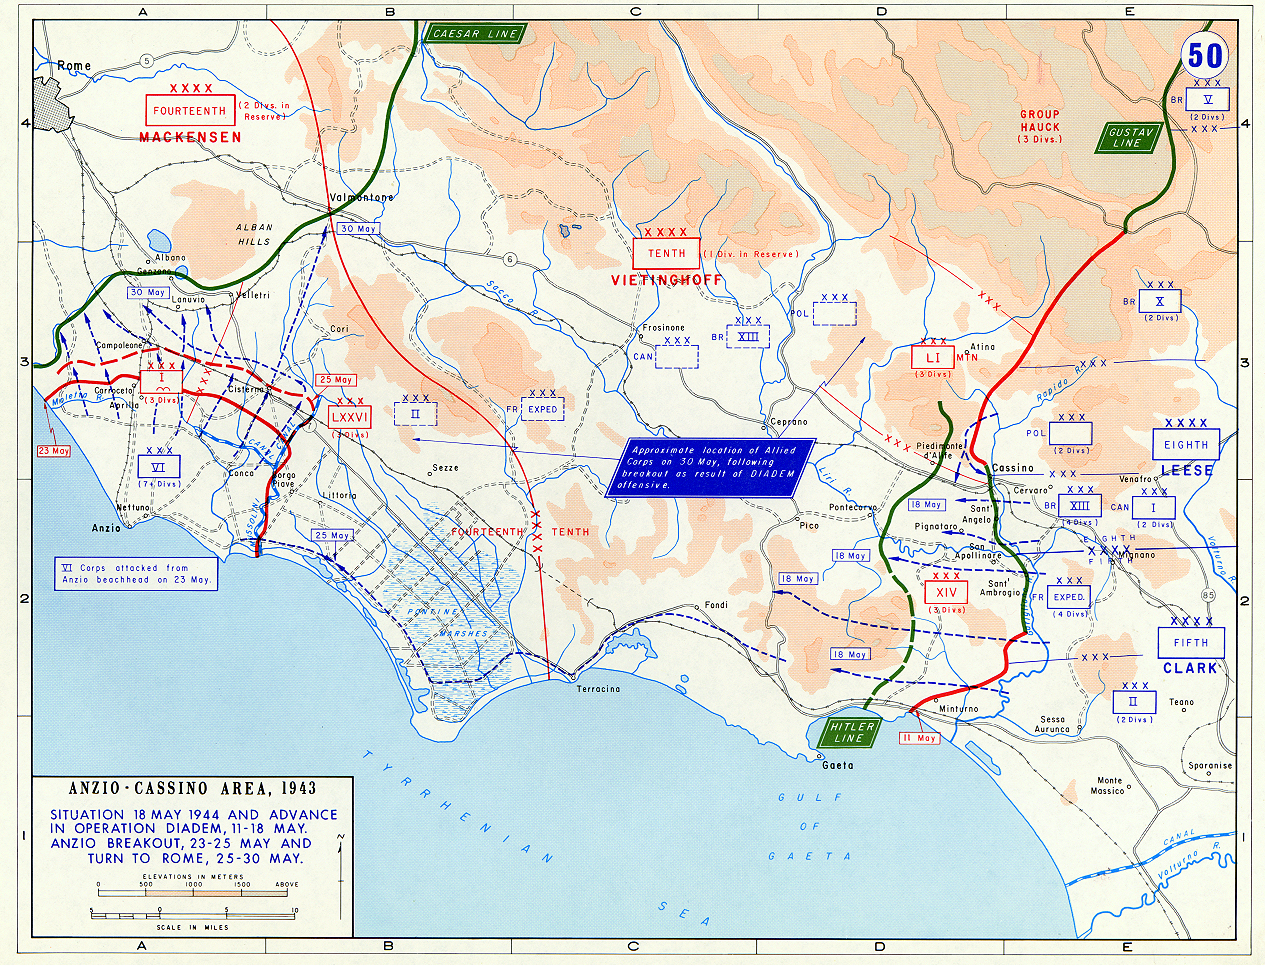 Map of Breakout at Anzio, Italy and the Allied Advance to ... Map Of Rome Italy Area on map of rimini italy, map of perugia italy, map of molise italy, map of tropea italy, map of naples italy, map of treviso italy, map of palermo italy, map of milan italy, map of venice italy, map of viterbo italy, map of verona italy, map of salerno italy, map of tuscany italy, map of cremona italy, map of salina italy, map of pistoia italy, map of sardinia italy, map of la maddalena italy, map of chianti italy, map of alghero italy,